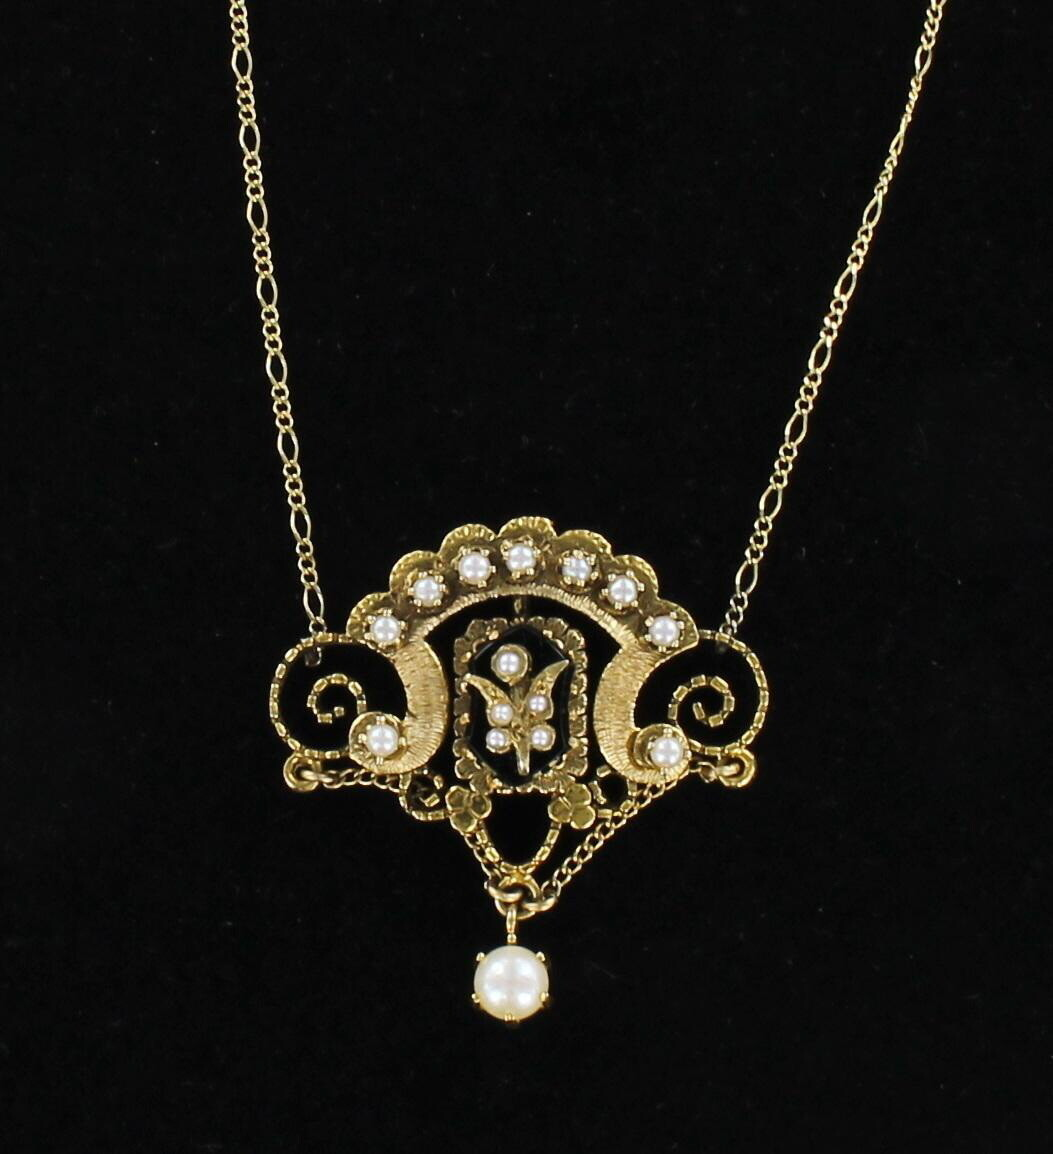 14KT ONYX AND PEARL PENDANT CIRCA 1920